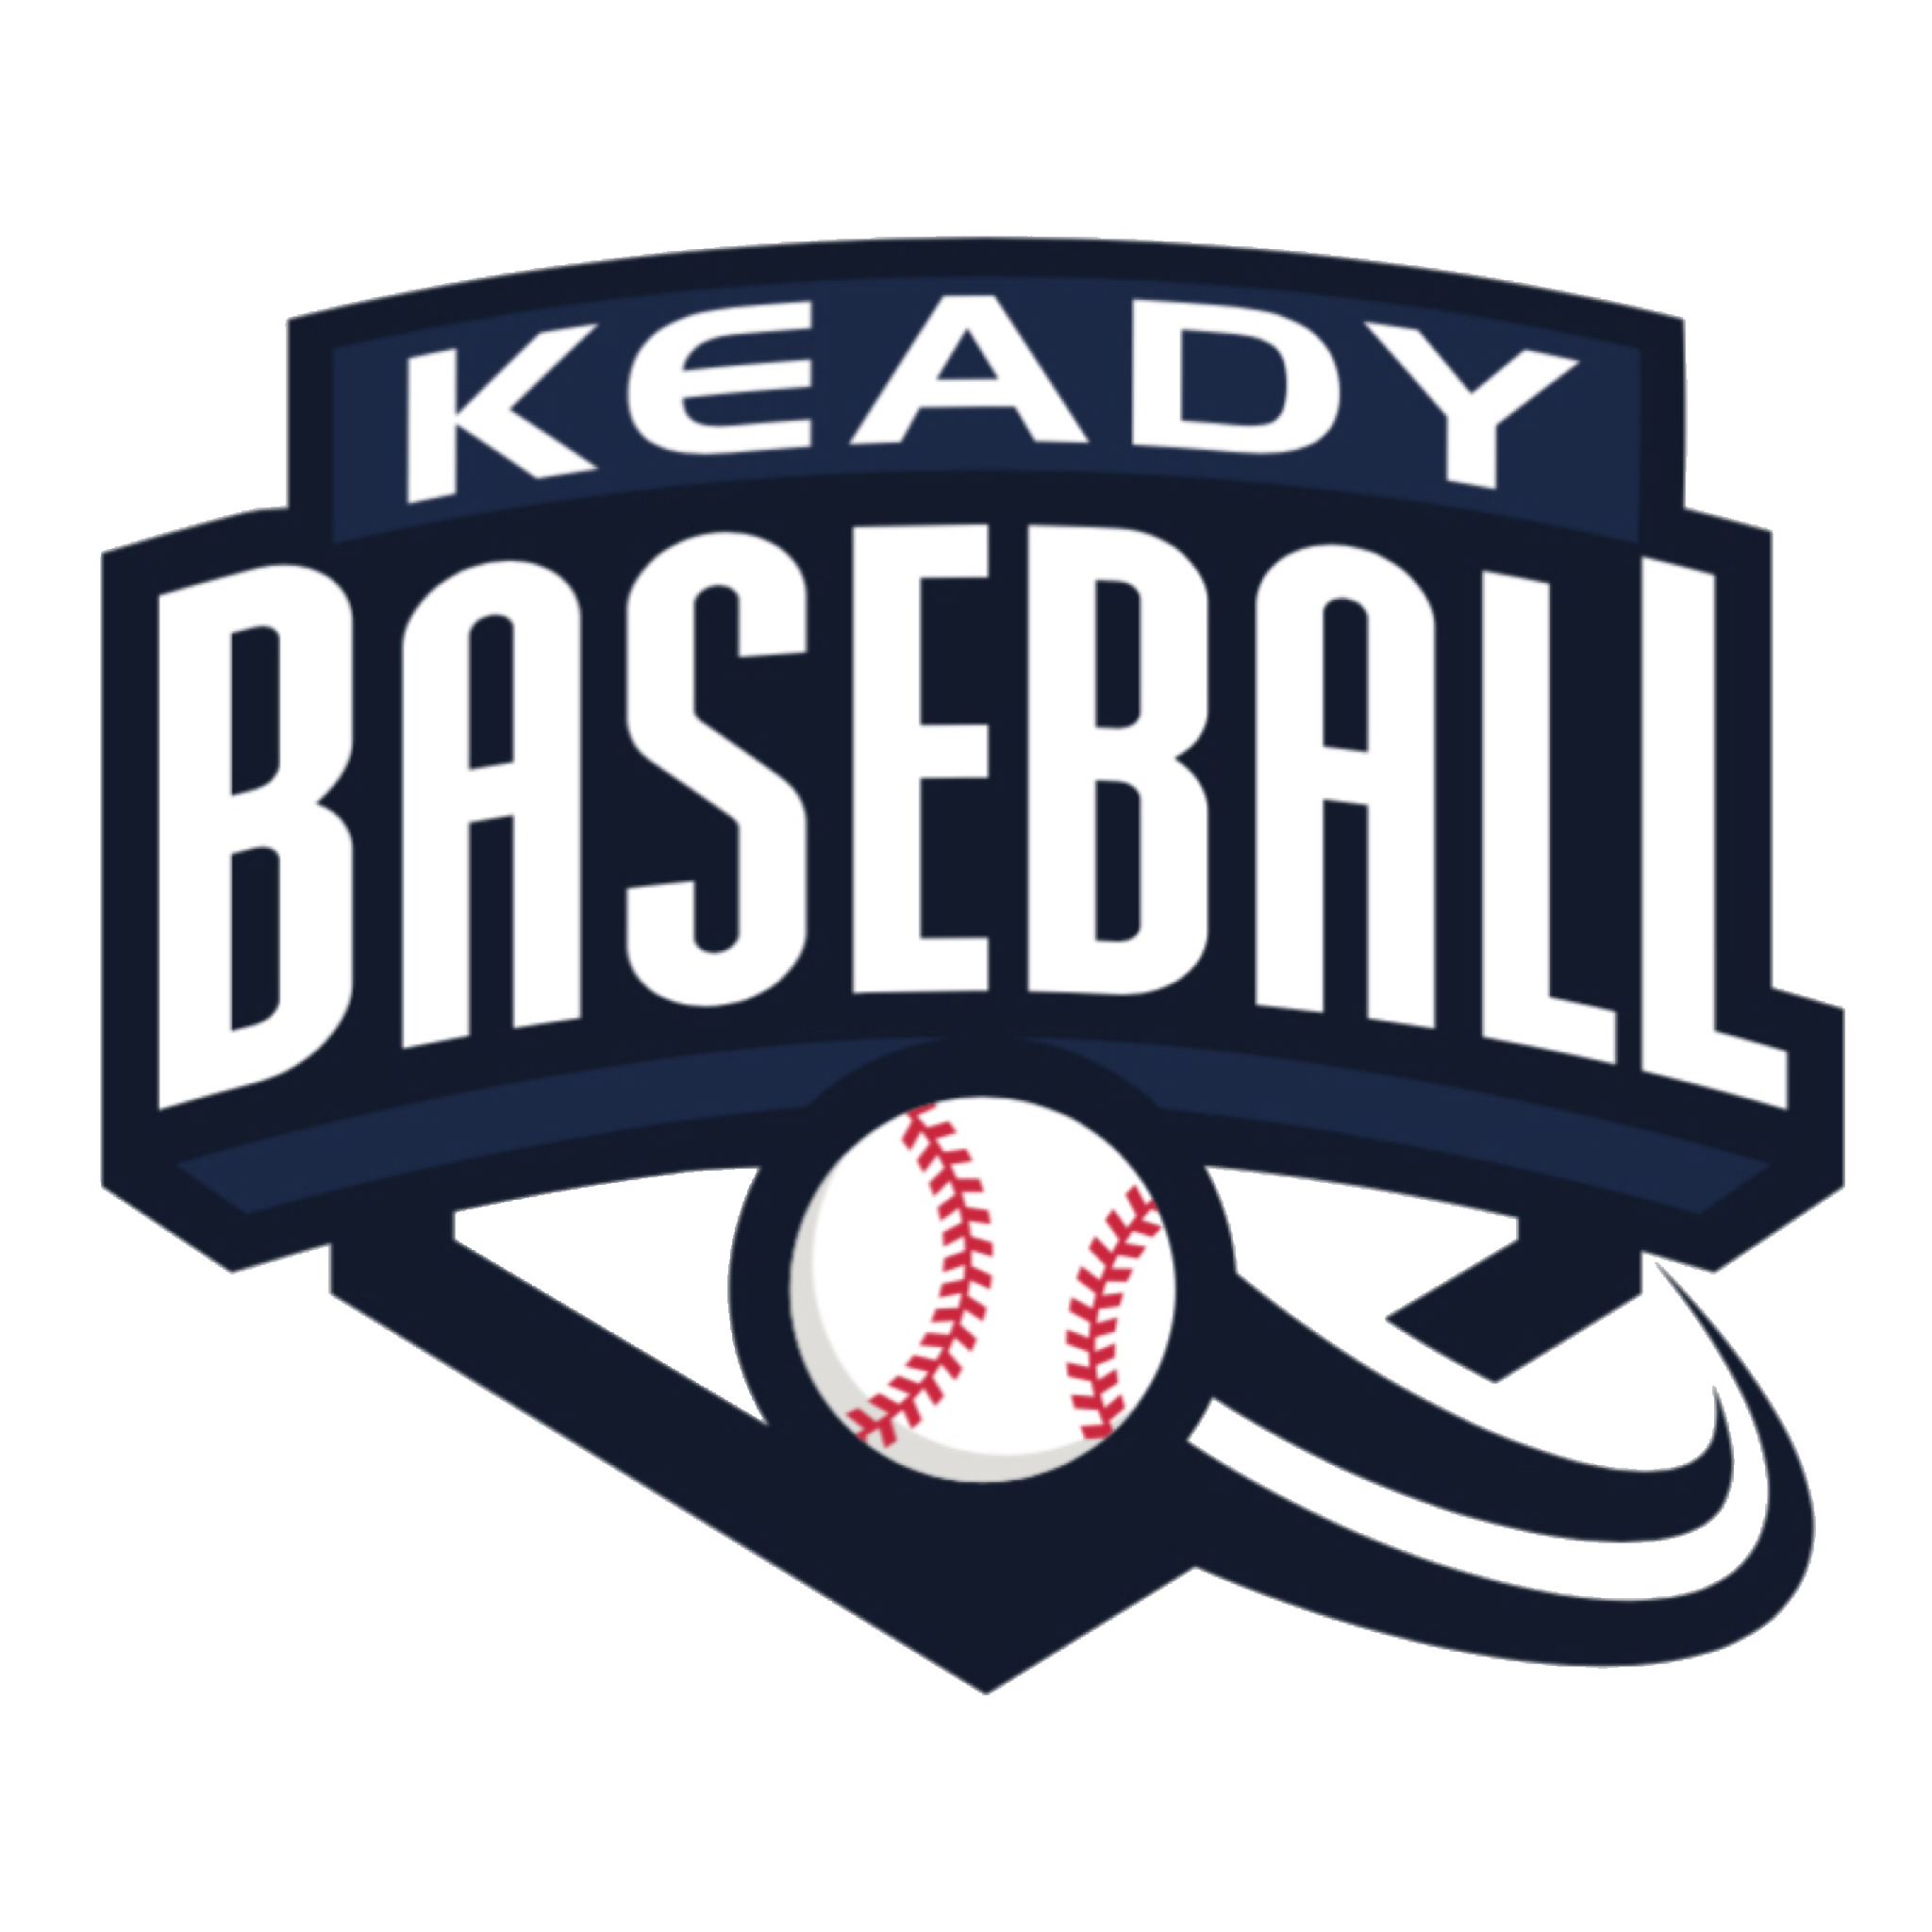 Keady Baseball Professional Baseball Development